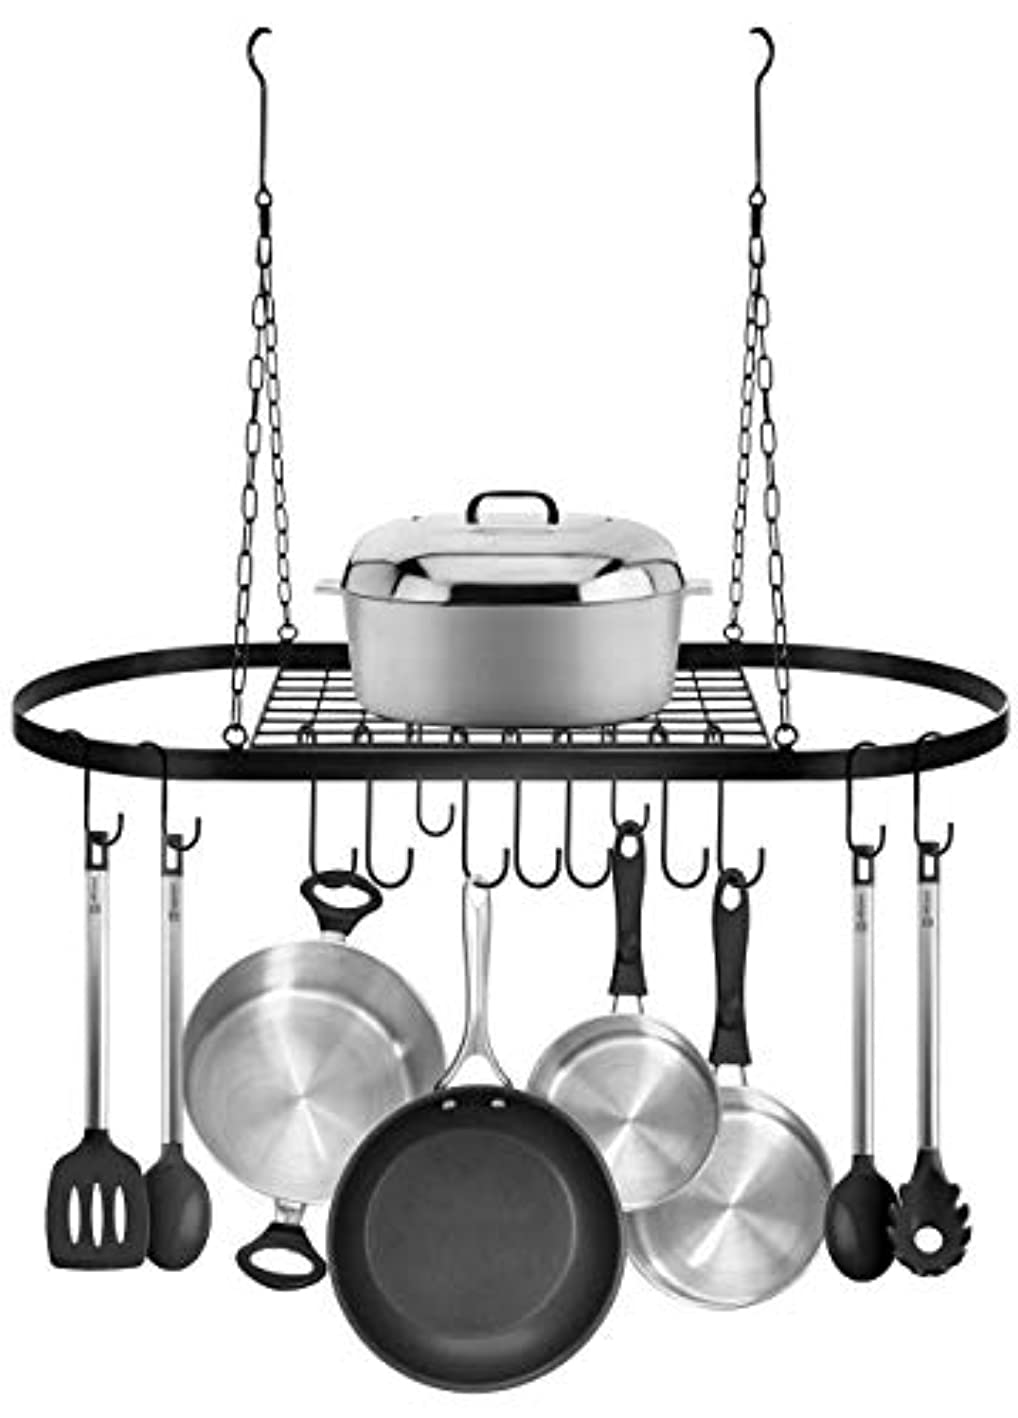 US Fast Shipment Quaanti Pot and Pan Rack for Ceiling with 10 Hooks,Decorative Oval Mounted Storage Rack Hanger,Multi-Purpose Organizer for Home,Restaurant,Kitchen Cookware,Utensils,Books (Black)